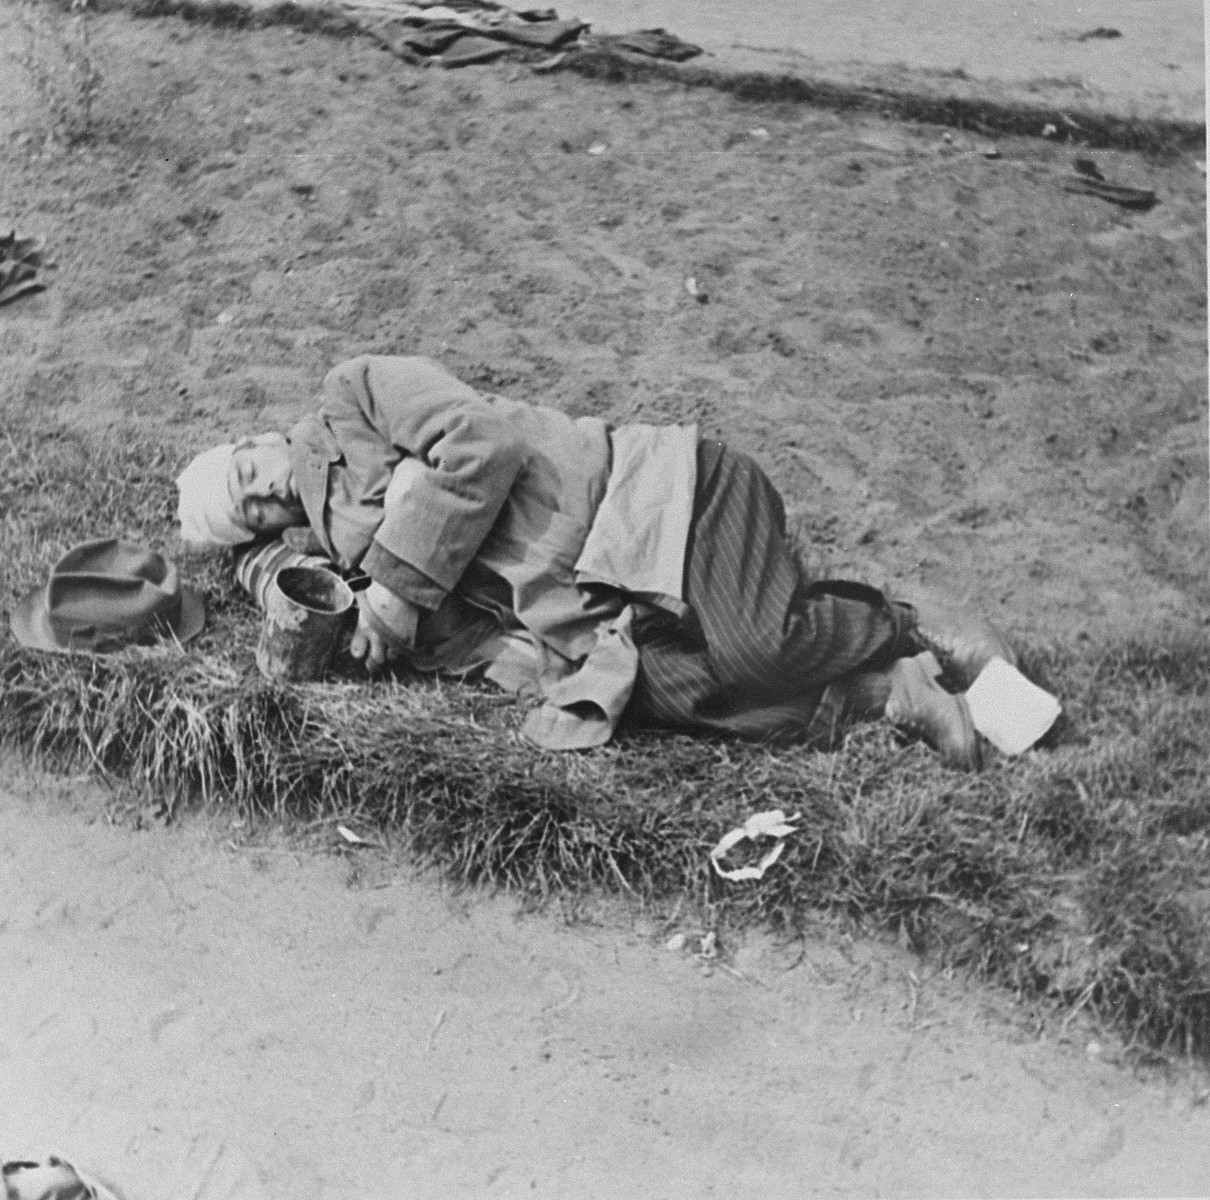 A survivor sleeps on the grounds of the Bergen-Belsen concentration camp after liberation.